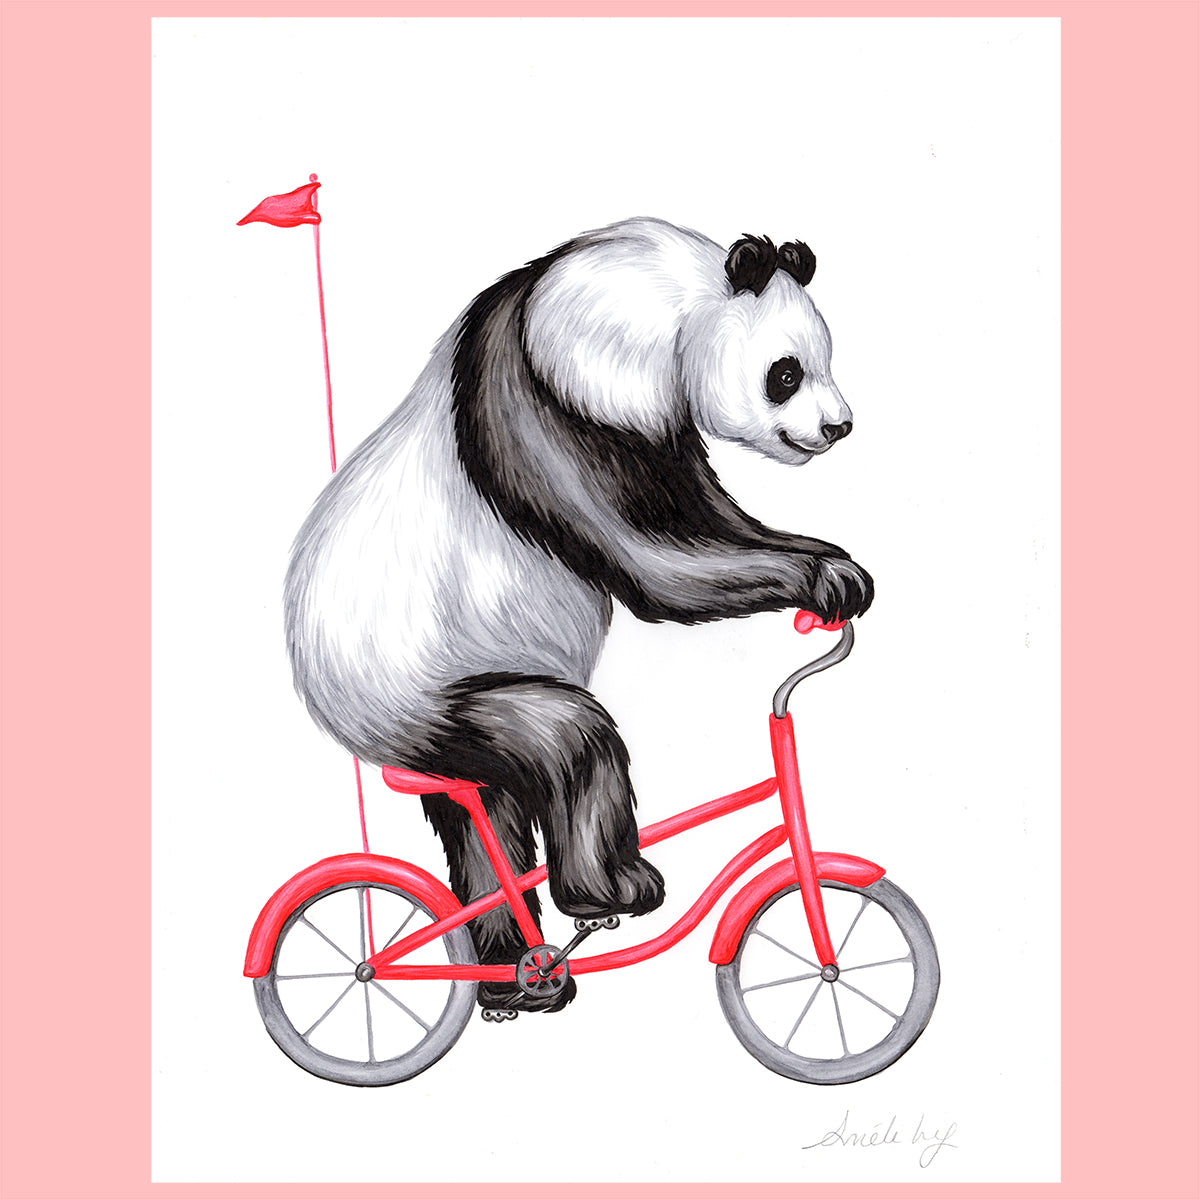 Panda on a bike - Original artwork, panda illustration, amelie legault